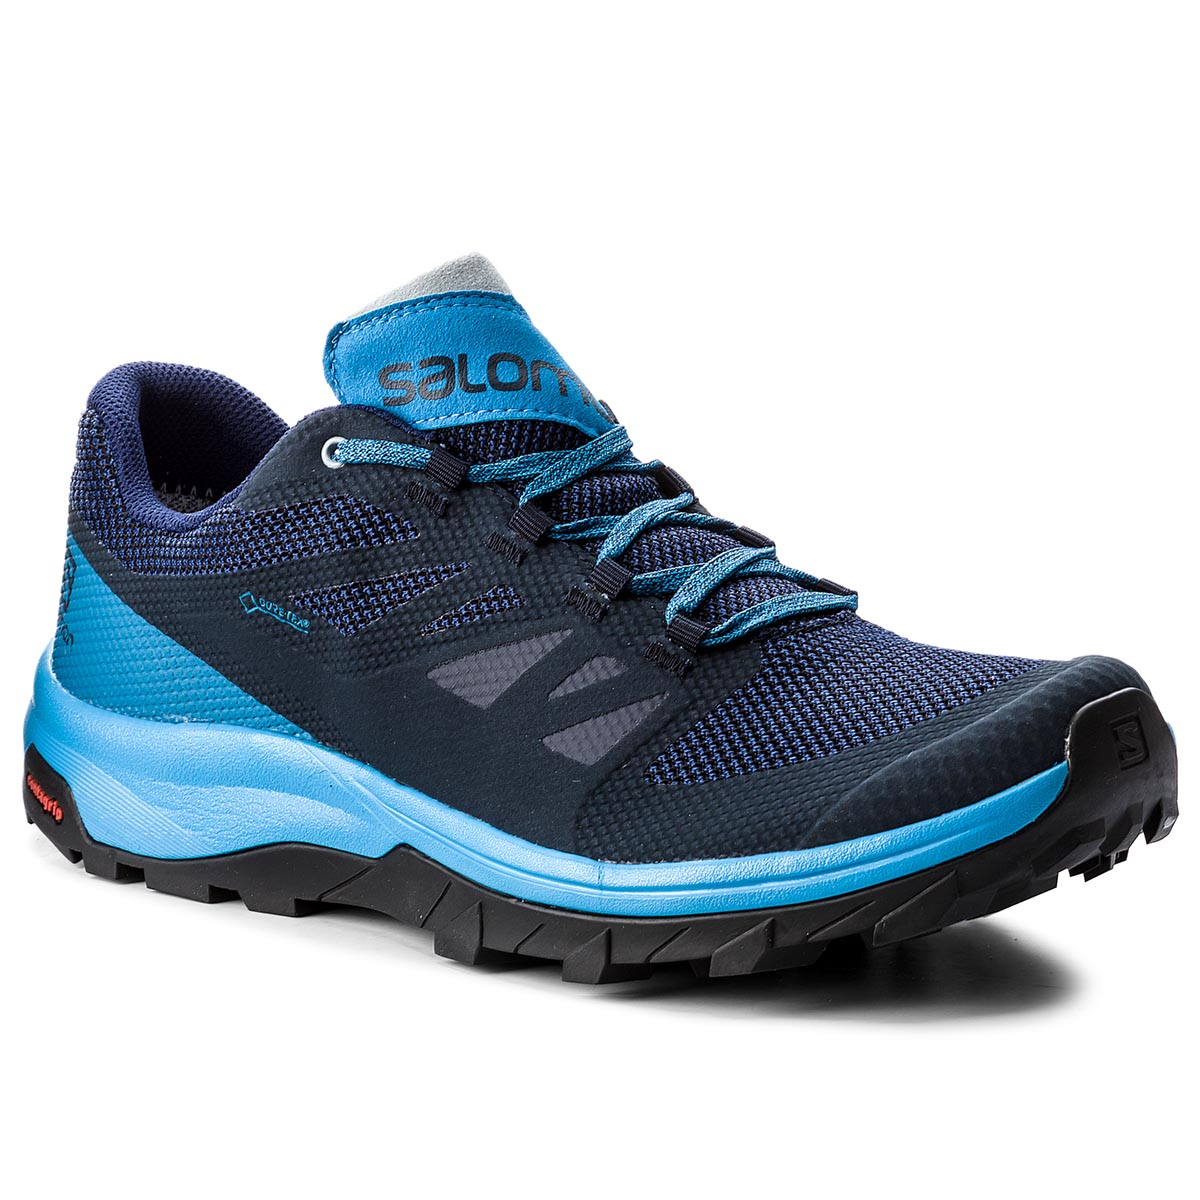 Trekkings Salomon - Outline Gtx Gore-Tex 406191 33 V0 10 Navy Blaze/Indigo Bun imagine epantofi.ro 2021